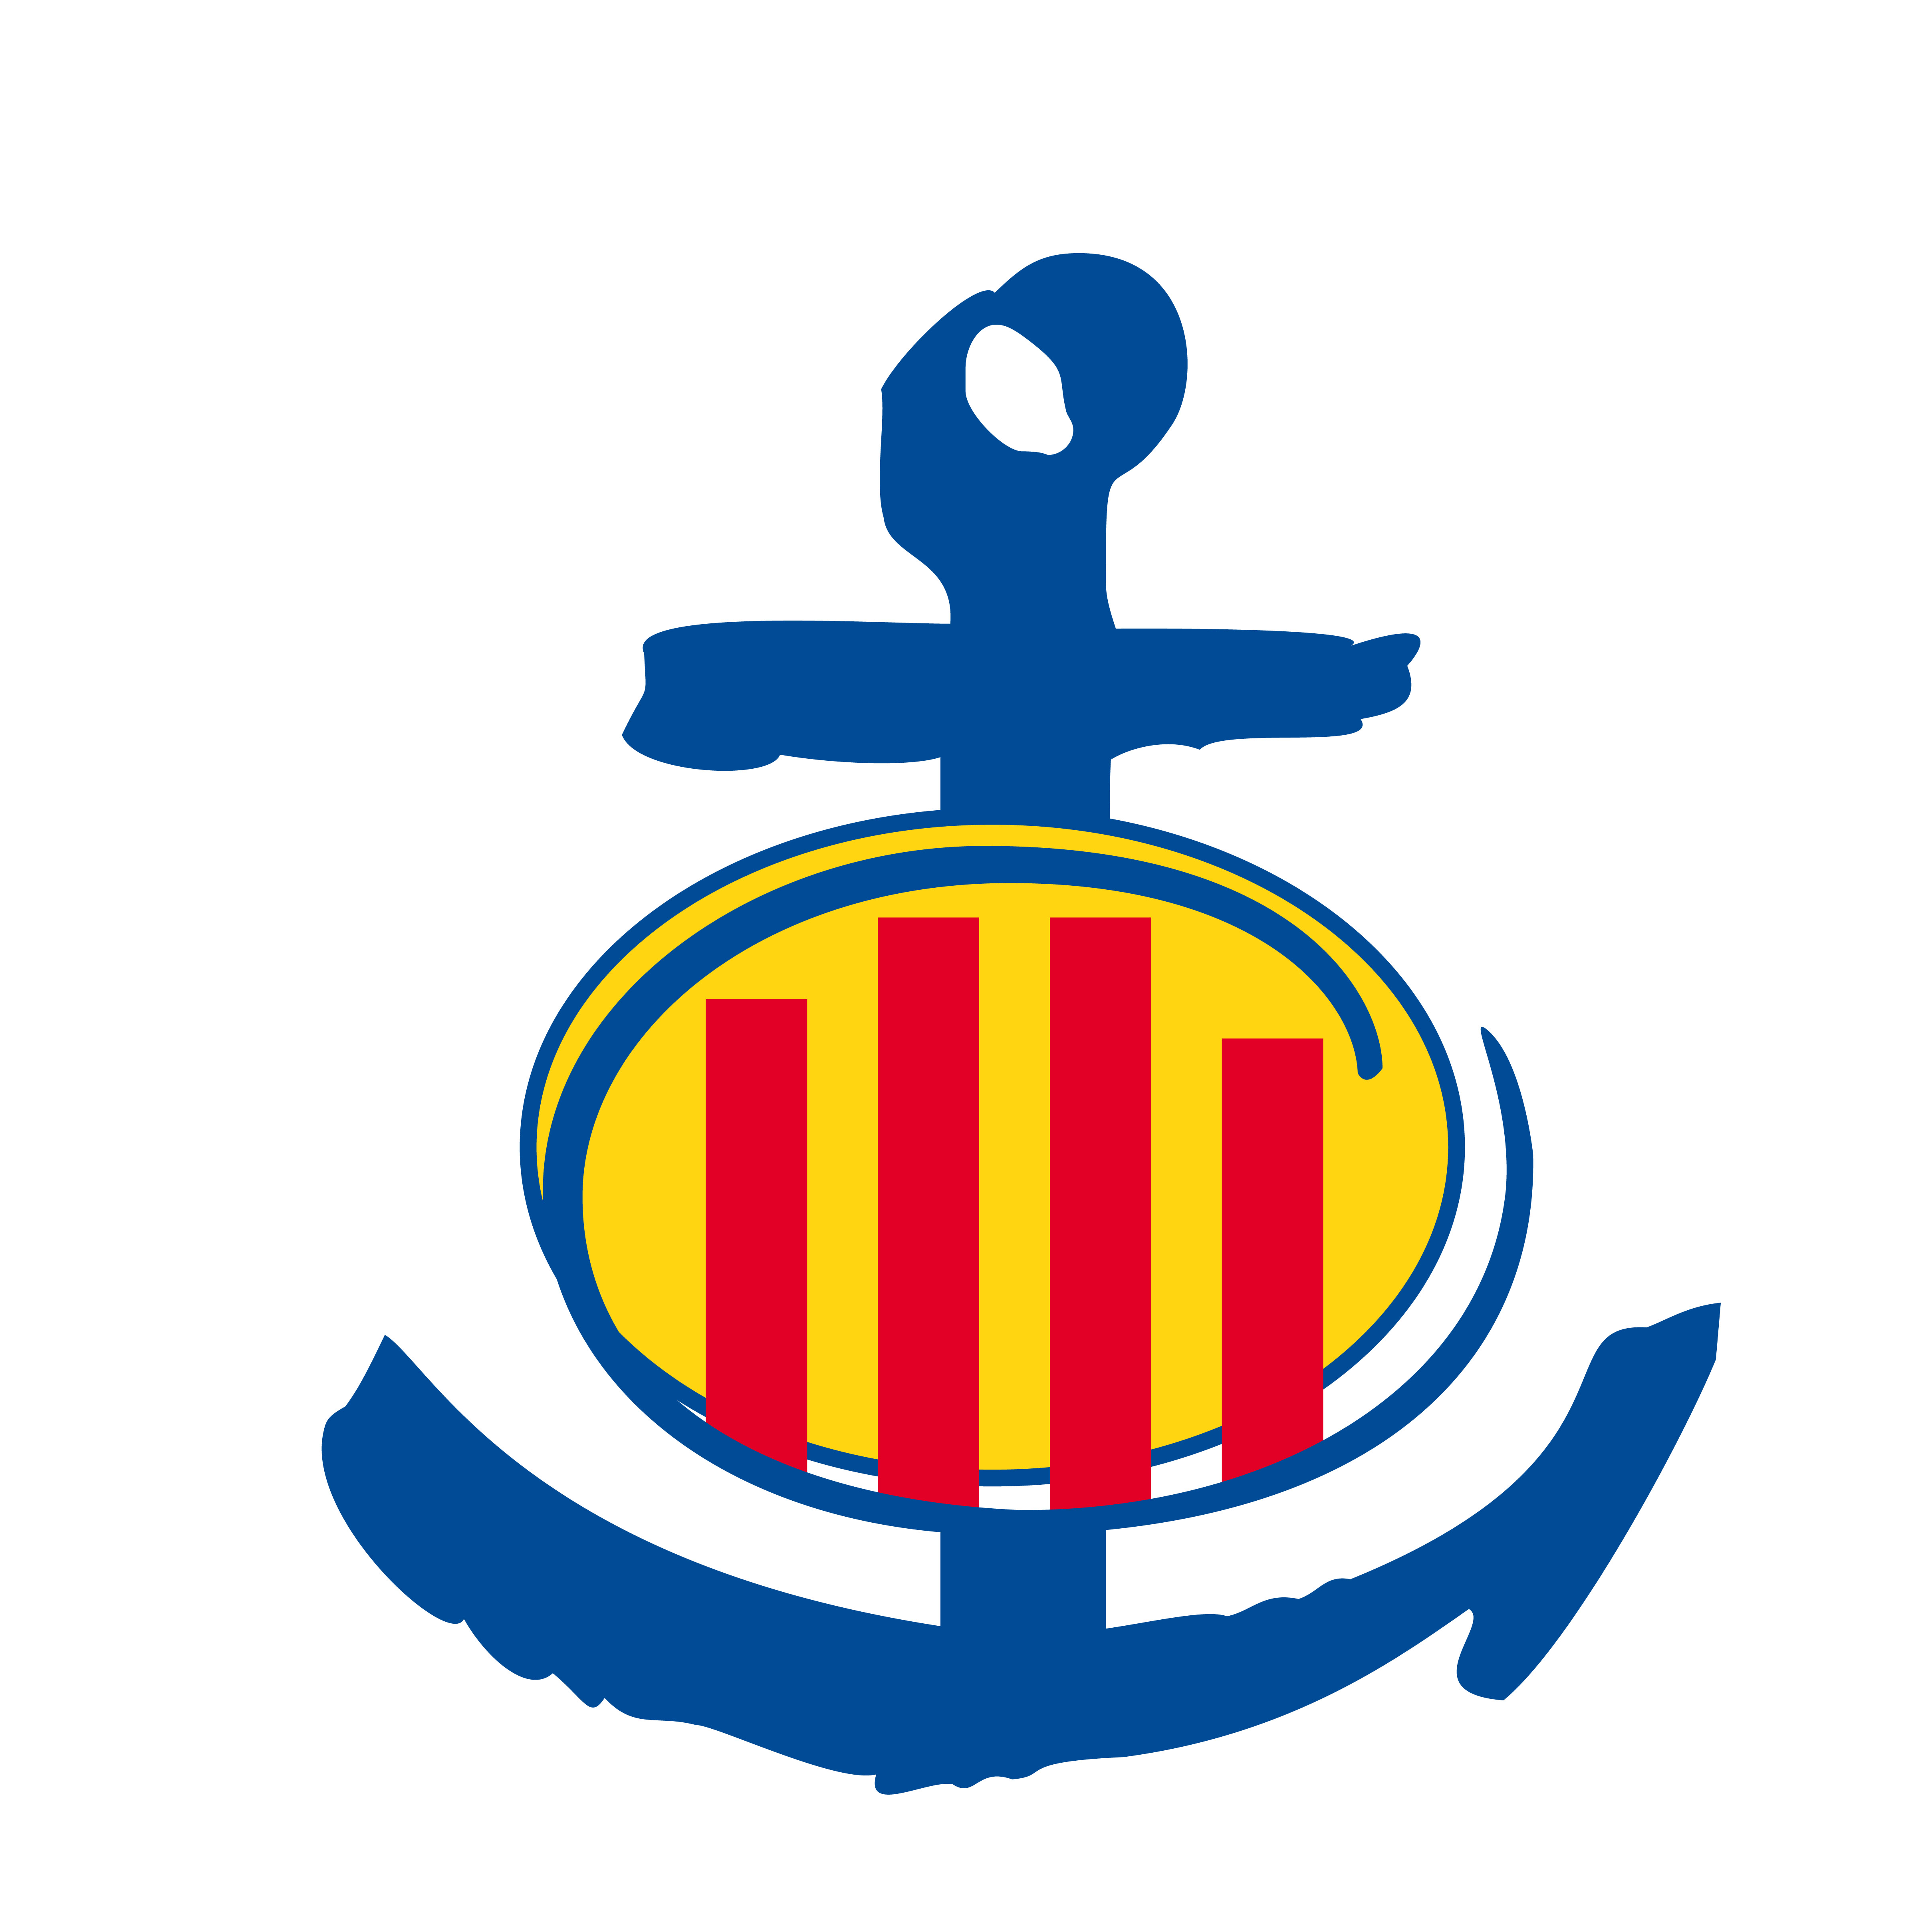 ACPET - Catalan Association of Tourist Marinas